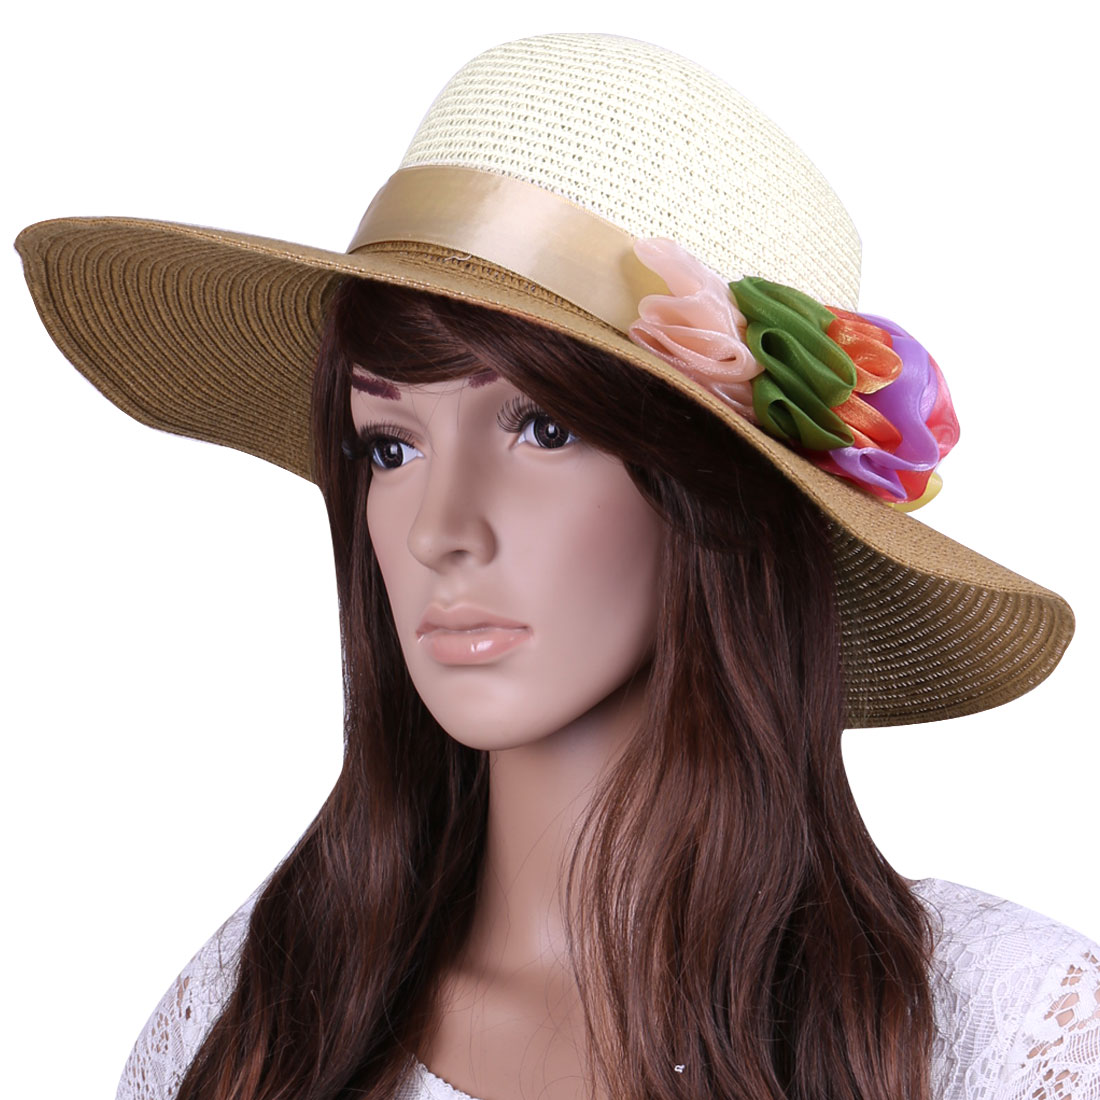 Woman Chic Summer Use Dark Beige Off-White Flower Embellished Sun Straw Hat